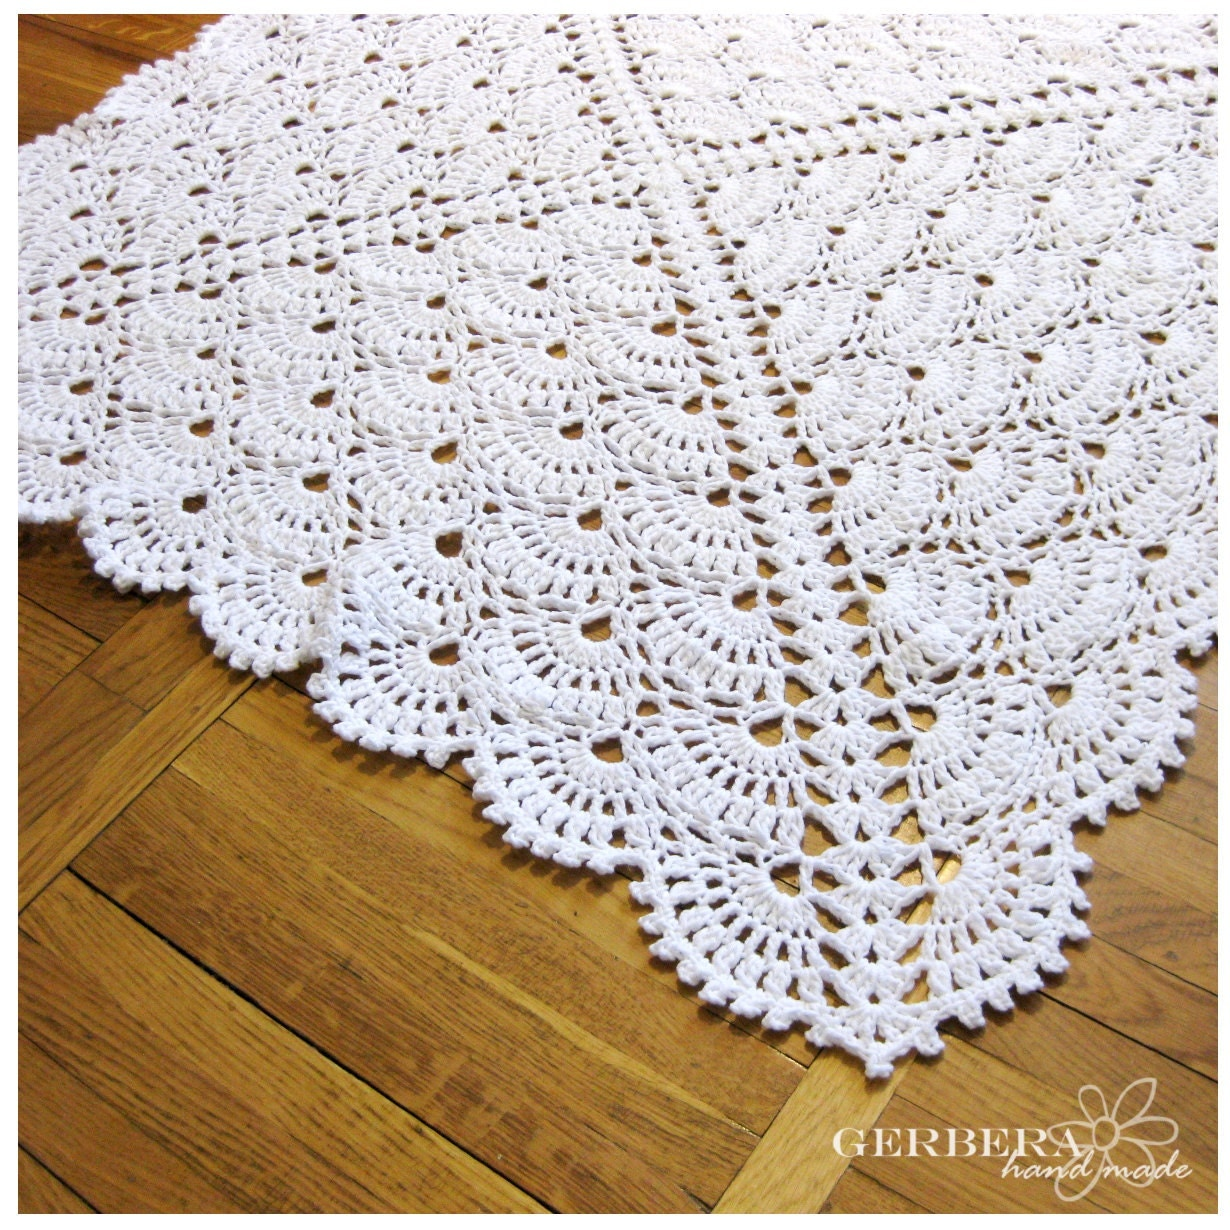 Crochet Patterns Christening Shawls : 301 Moved Permanently